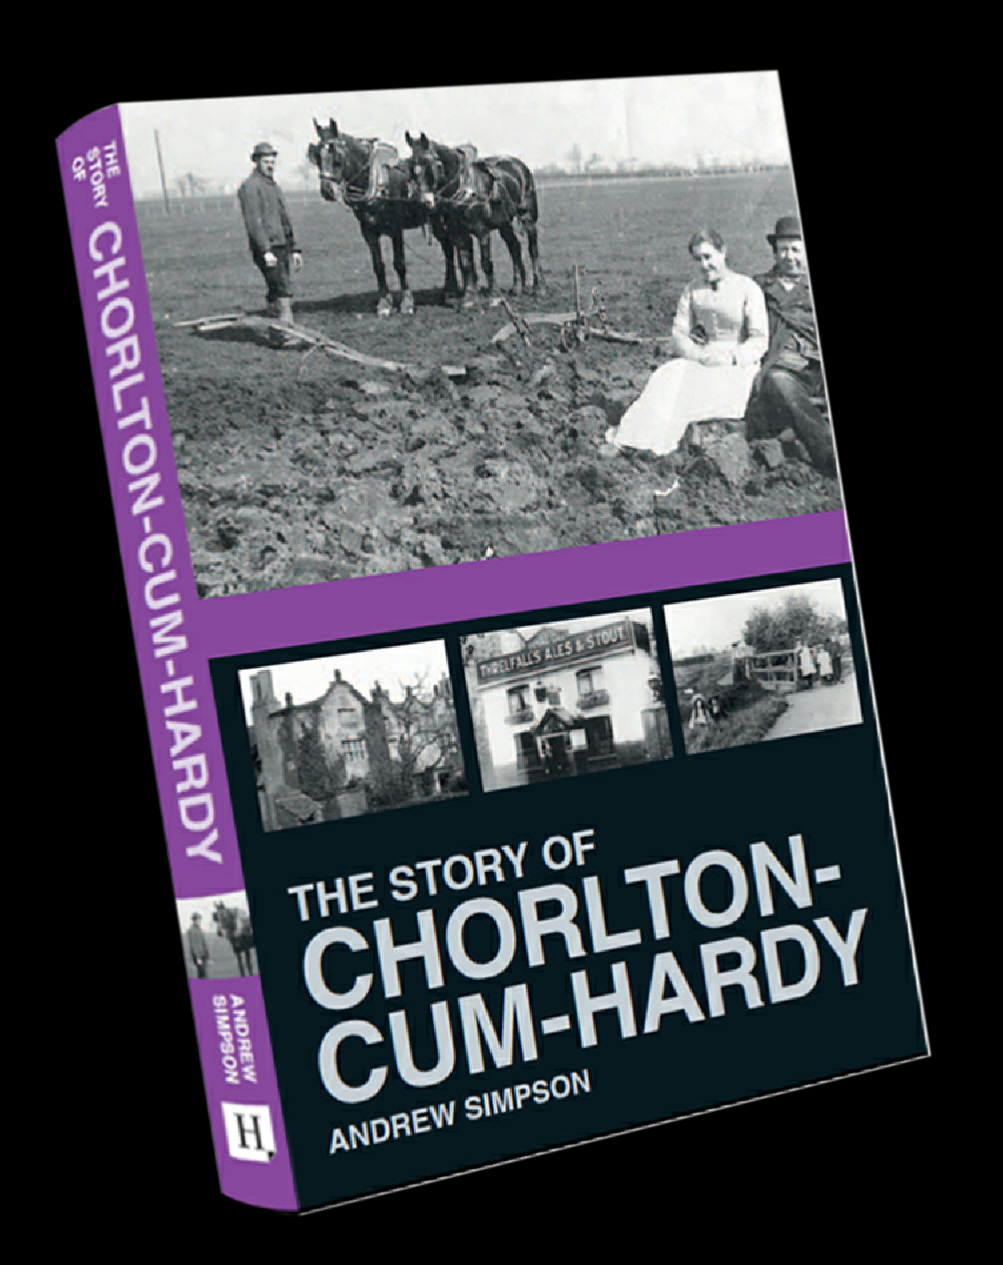 Chorlton Cum Hardy - Home Facebook